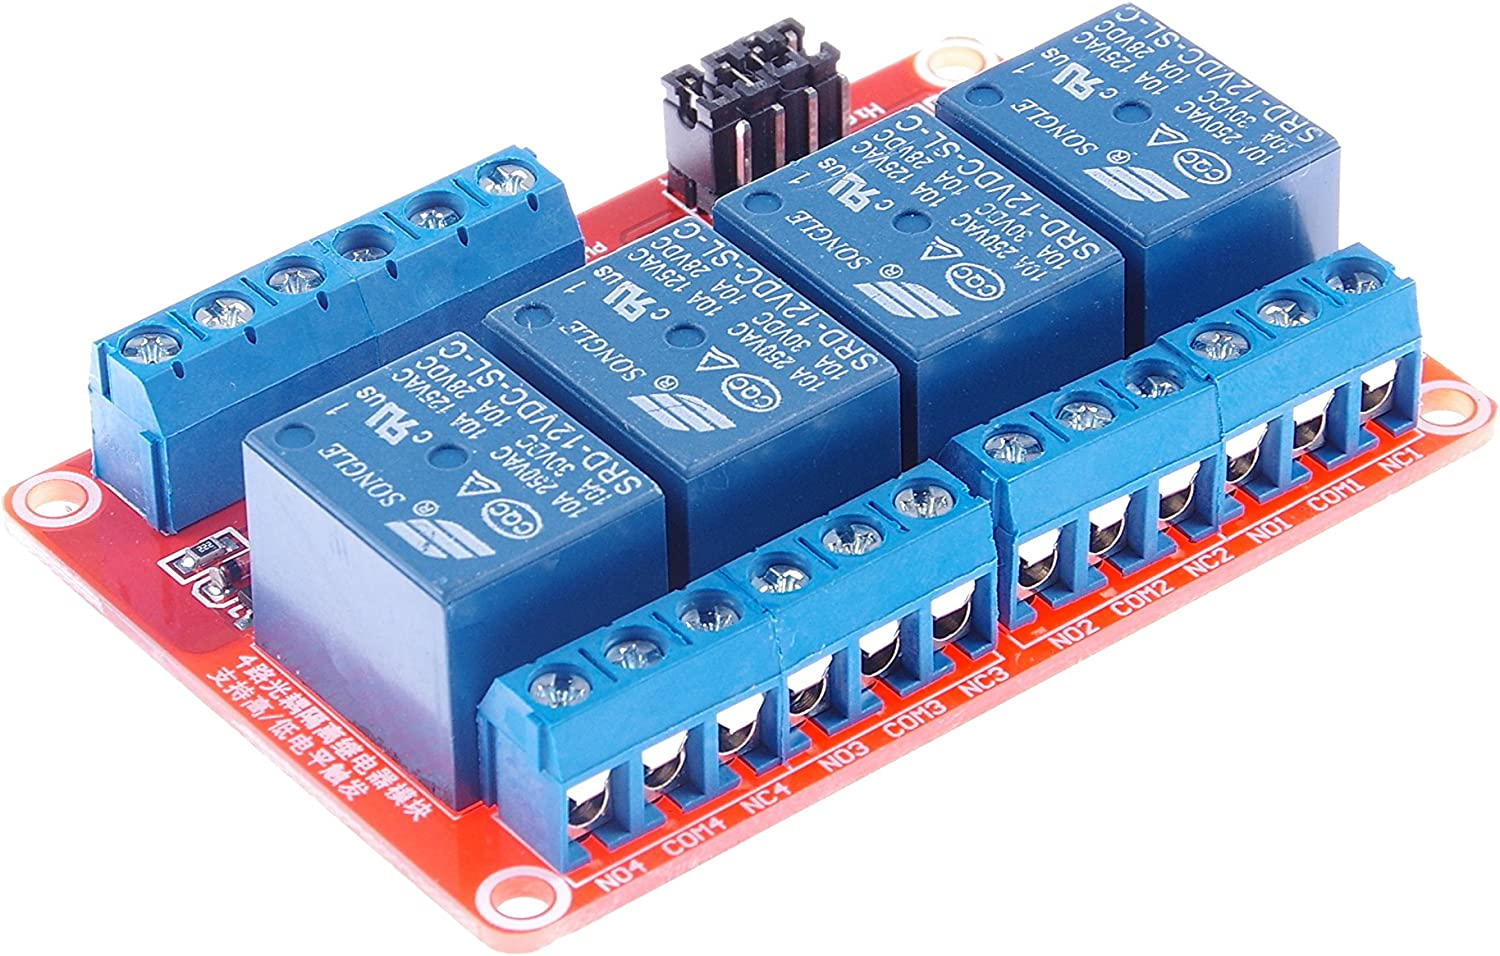 Industrial System Control AC 250V for PLC Automation Control KNACRO 4-Channel DC 12V Relay Module High Low Level Triggering Optocoupler Isolation Load 10A DC 30V DC 12V 10A, 4-Channel